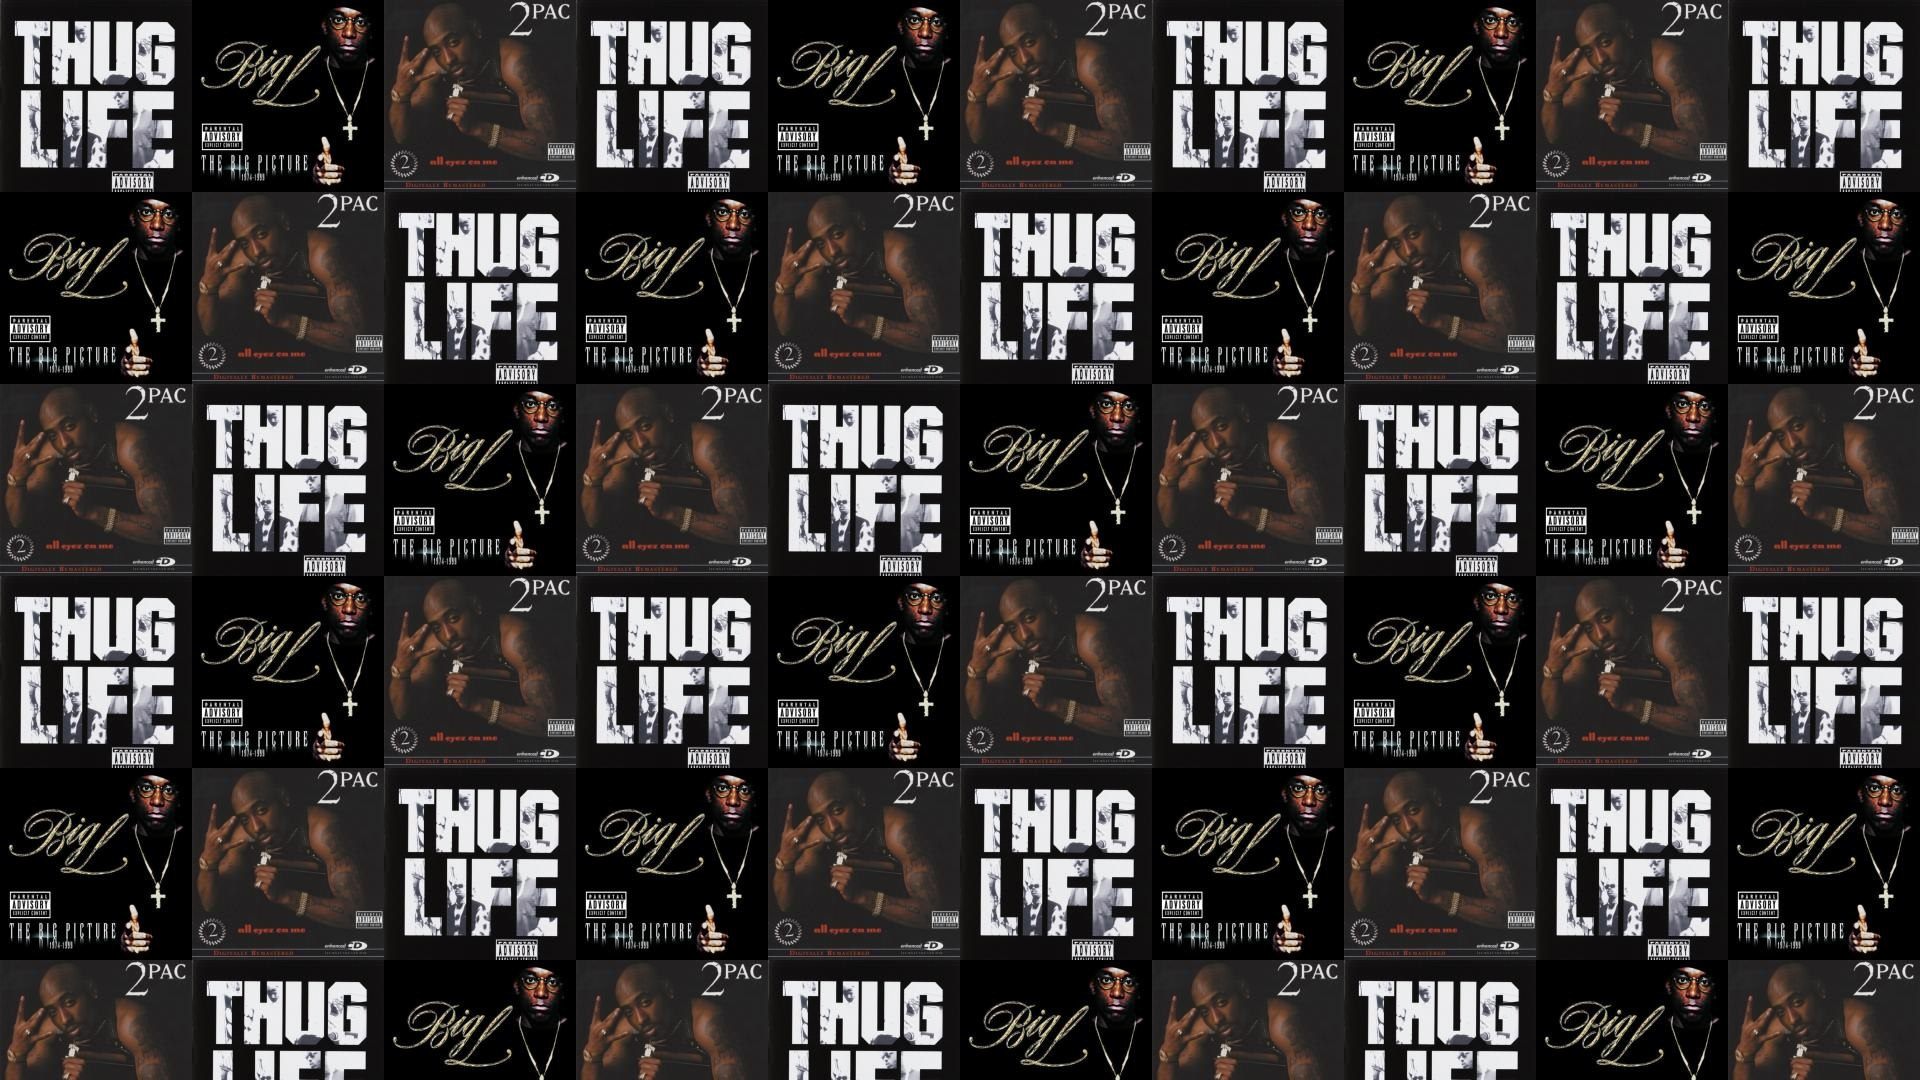 1920x1080 Download Tupac Live Wallpaper Thug Life for android, Tupac Live 1024×768 Tupac Wallpapers (40 Wallpapers) | Adorable Wallpapers